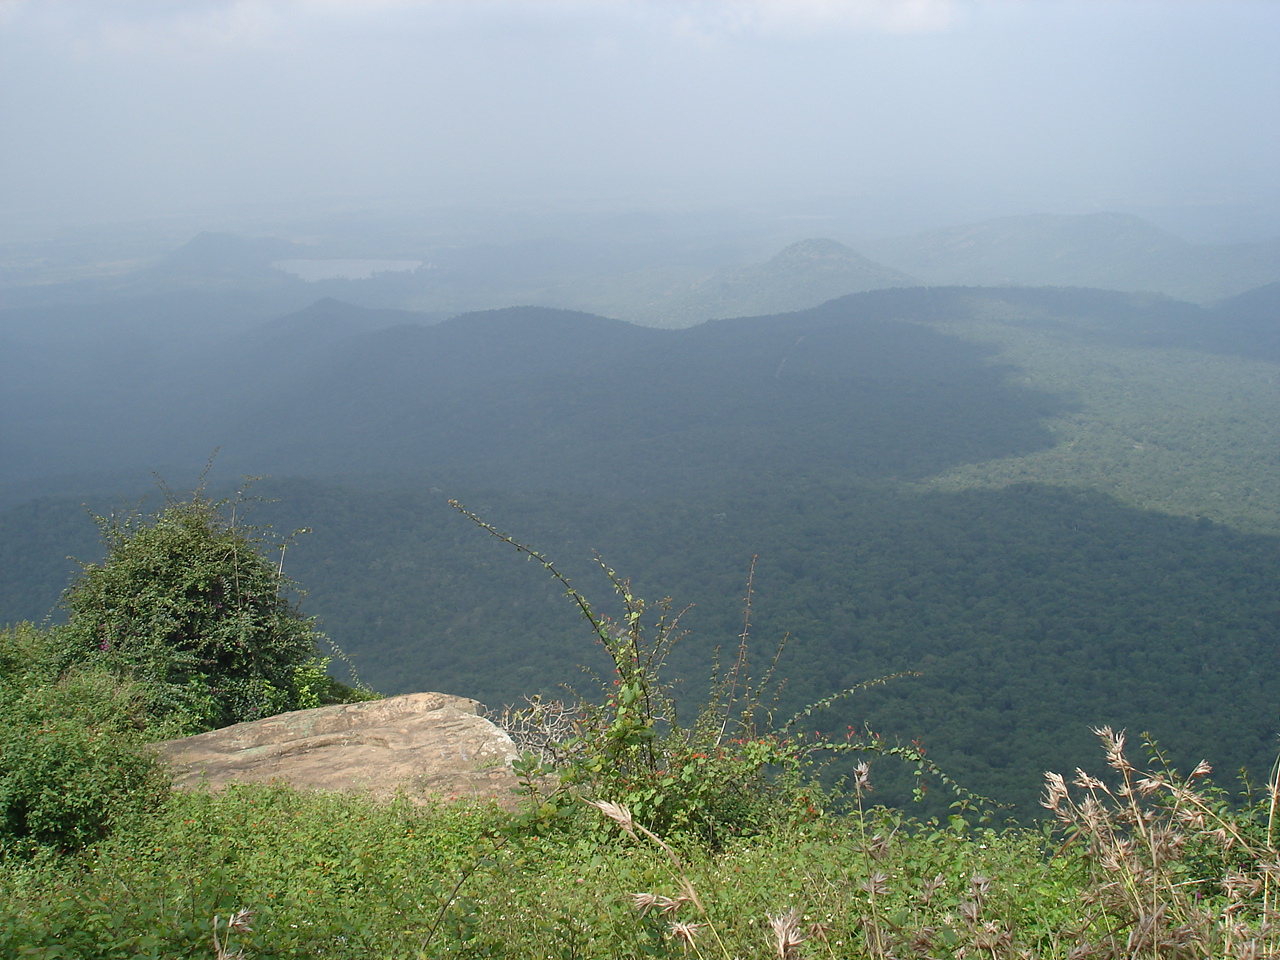 Biligiri Sri Ranganathaswamy Temple or BR Hills